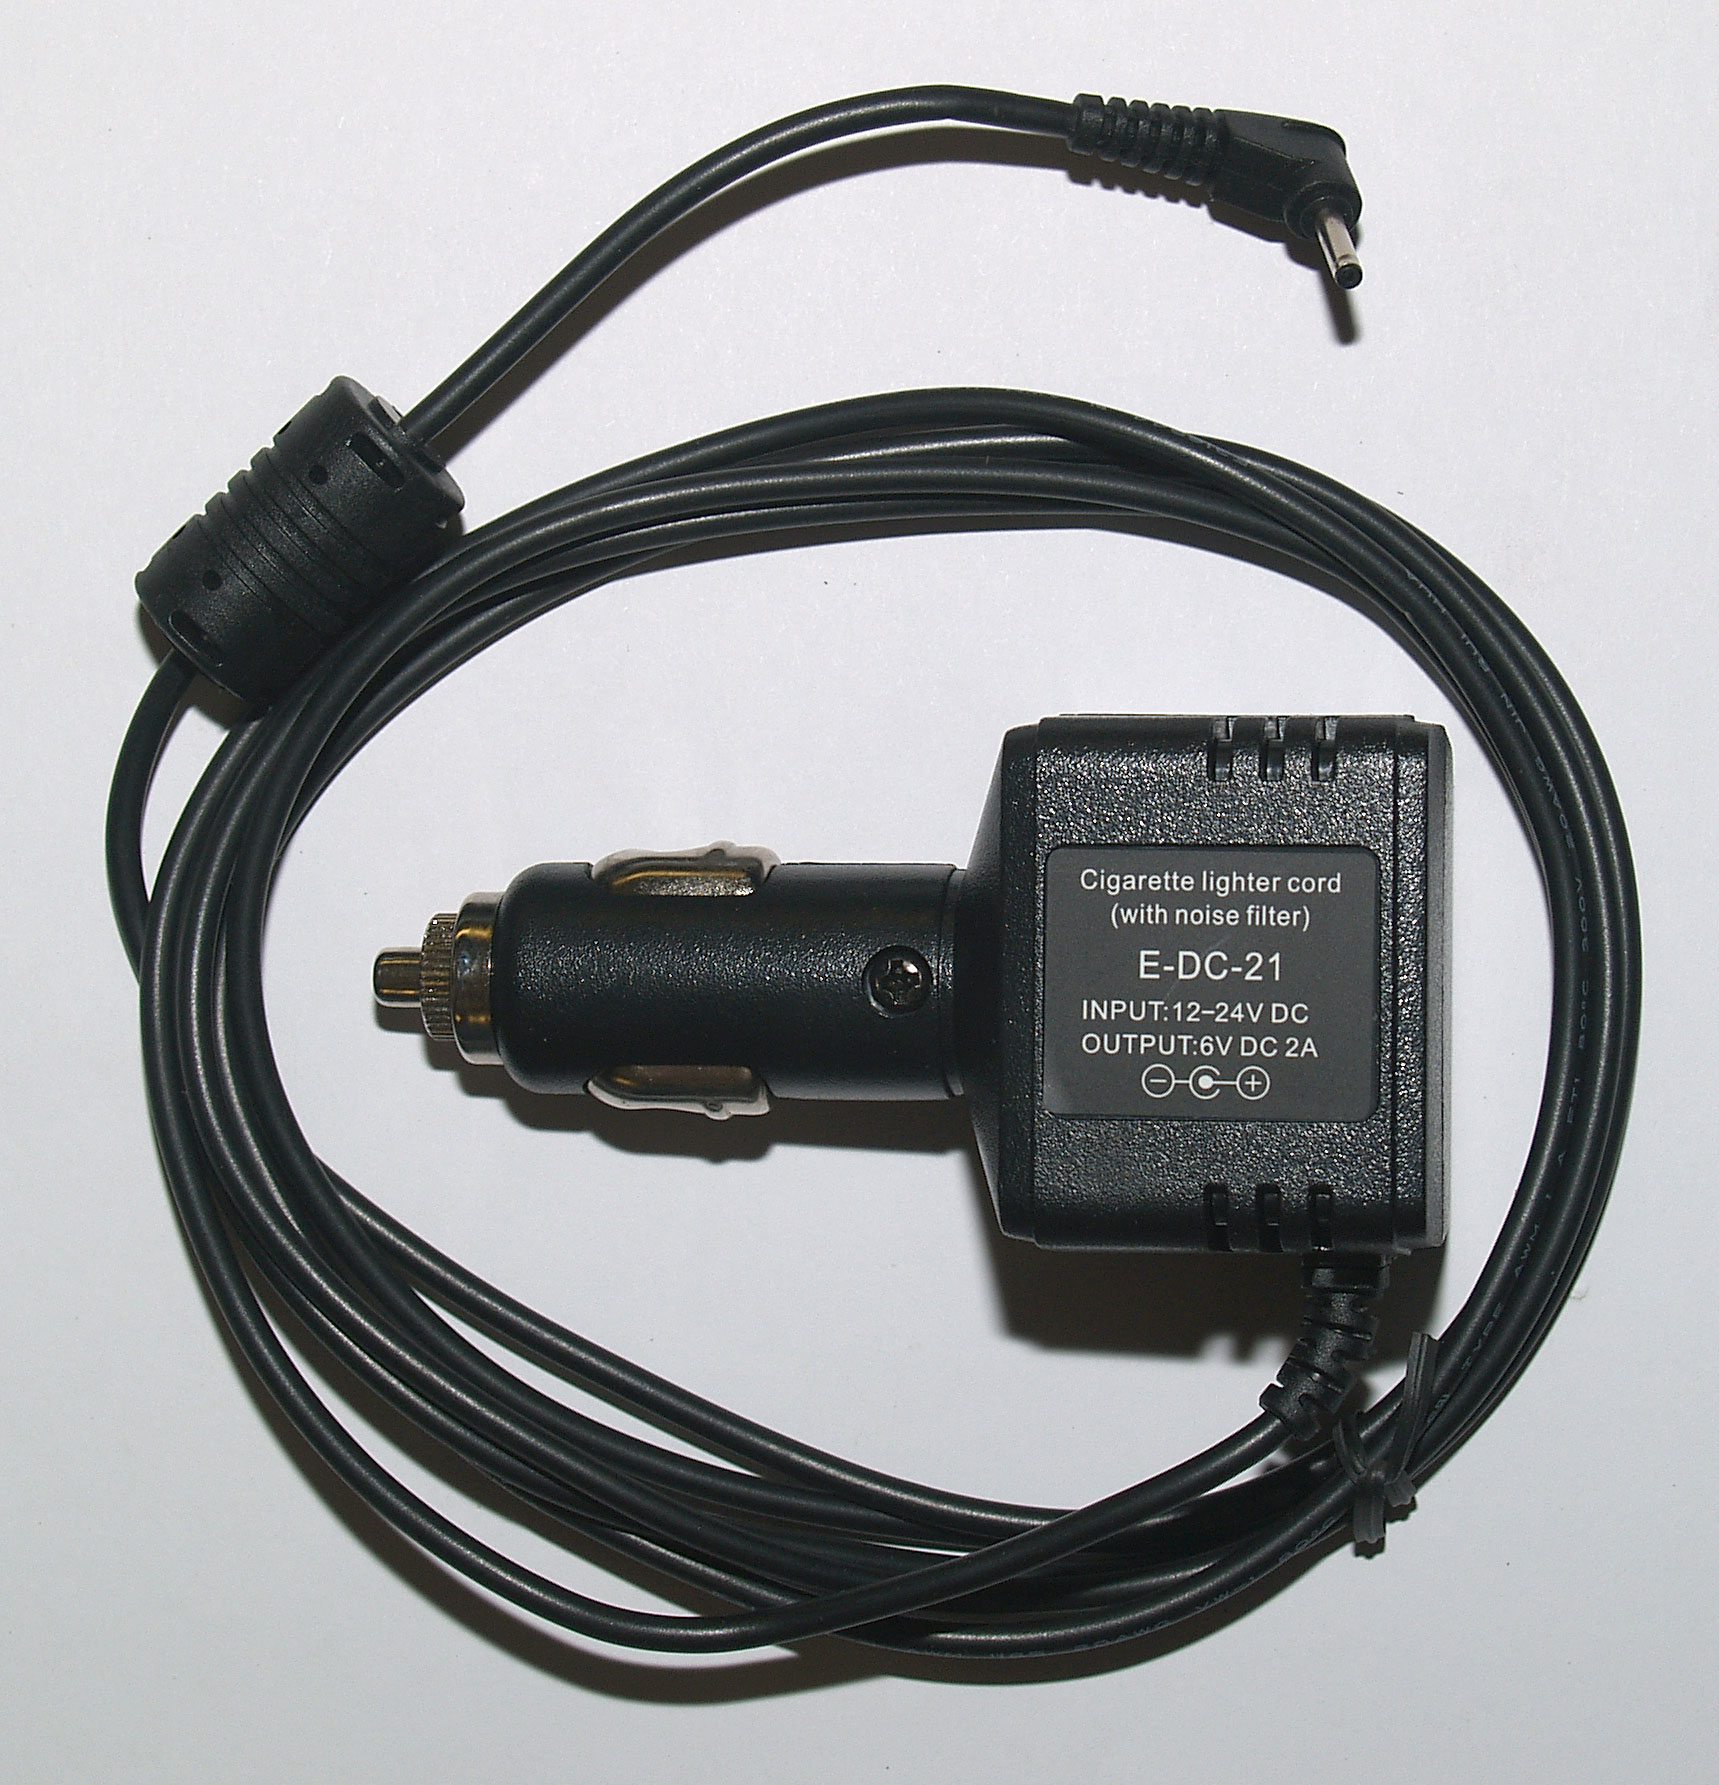 12 V Car charger for use with Zastone ZT-2R & Yaesu VX-2/VX-3